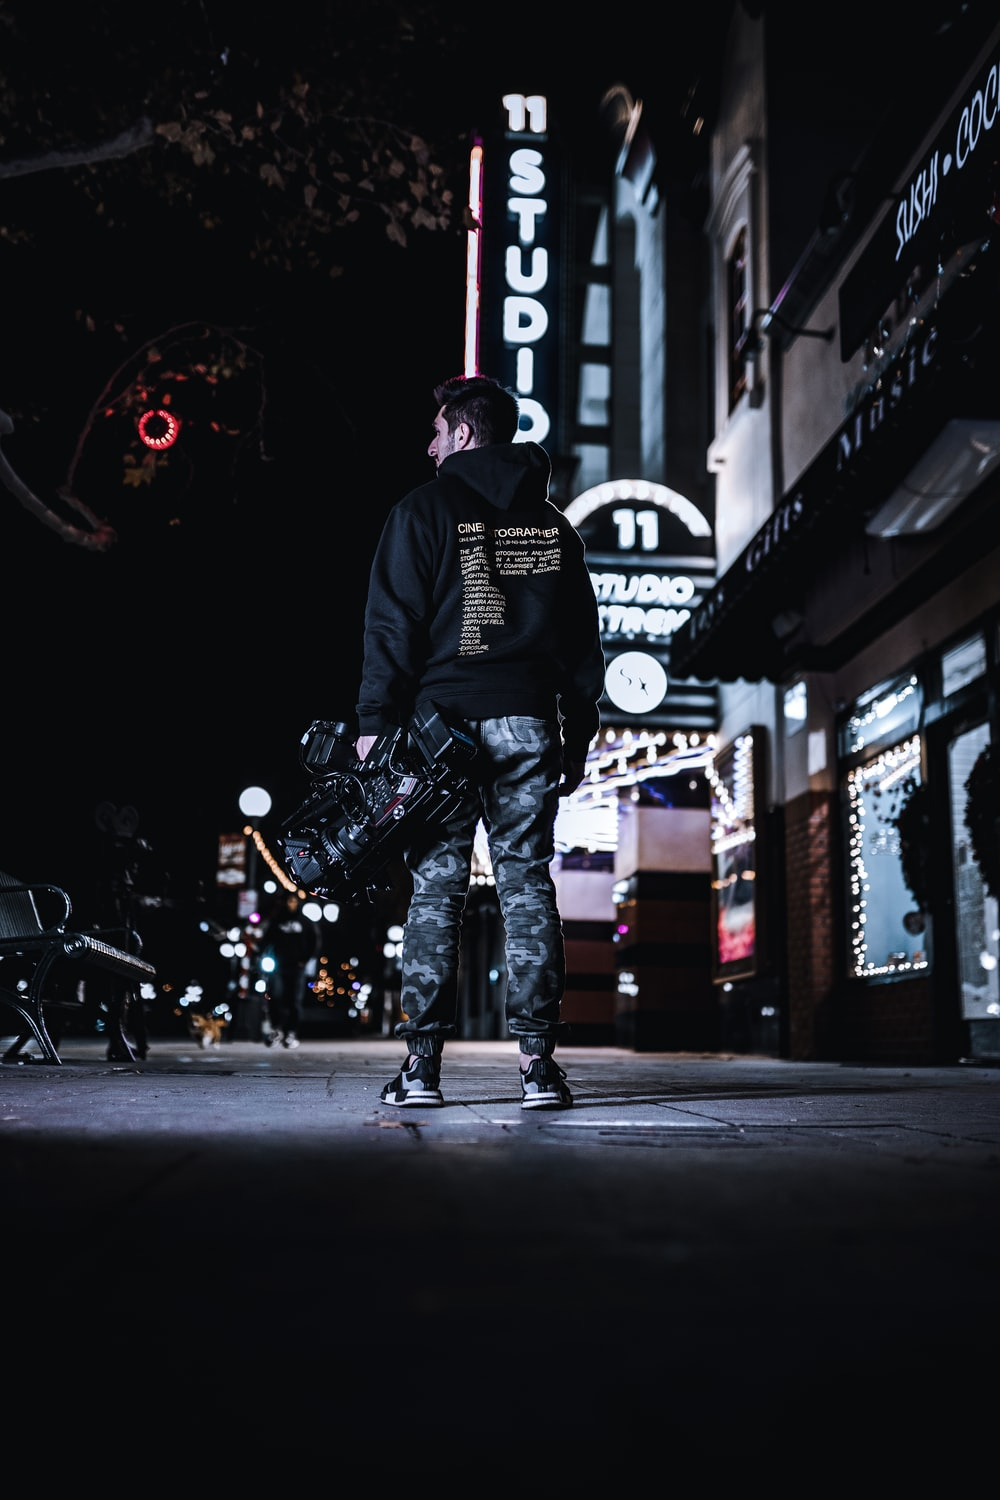 low-angle photography of man standing outside a building during nighttime